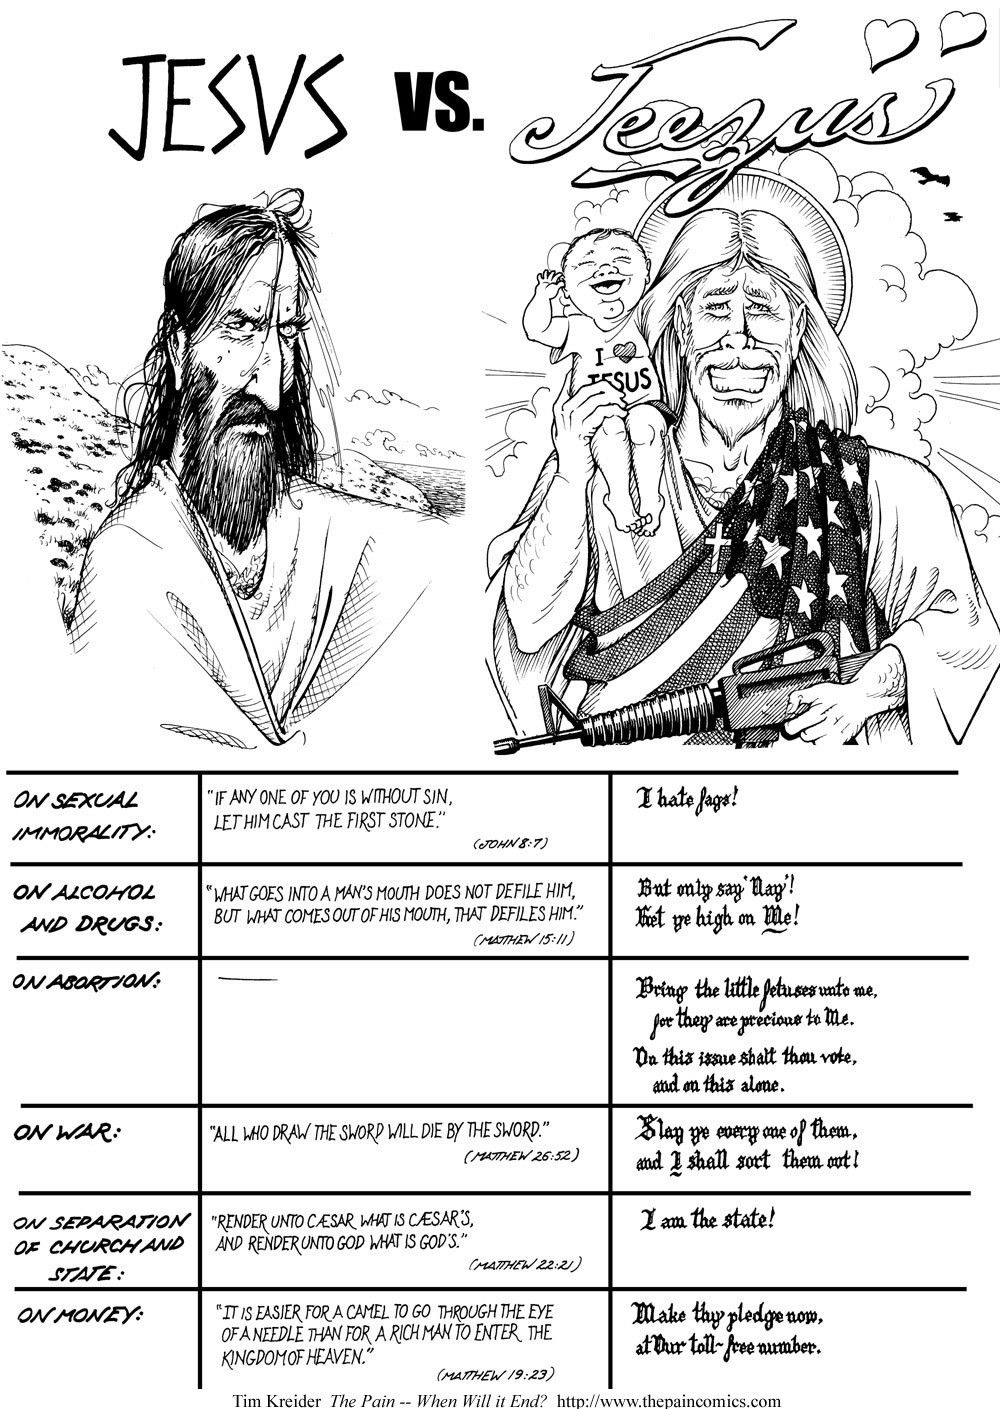 An actual history meme from the early 2000's on Western perceptions of Jesus and what he actually stated.